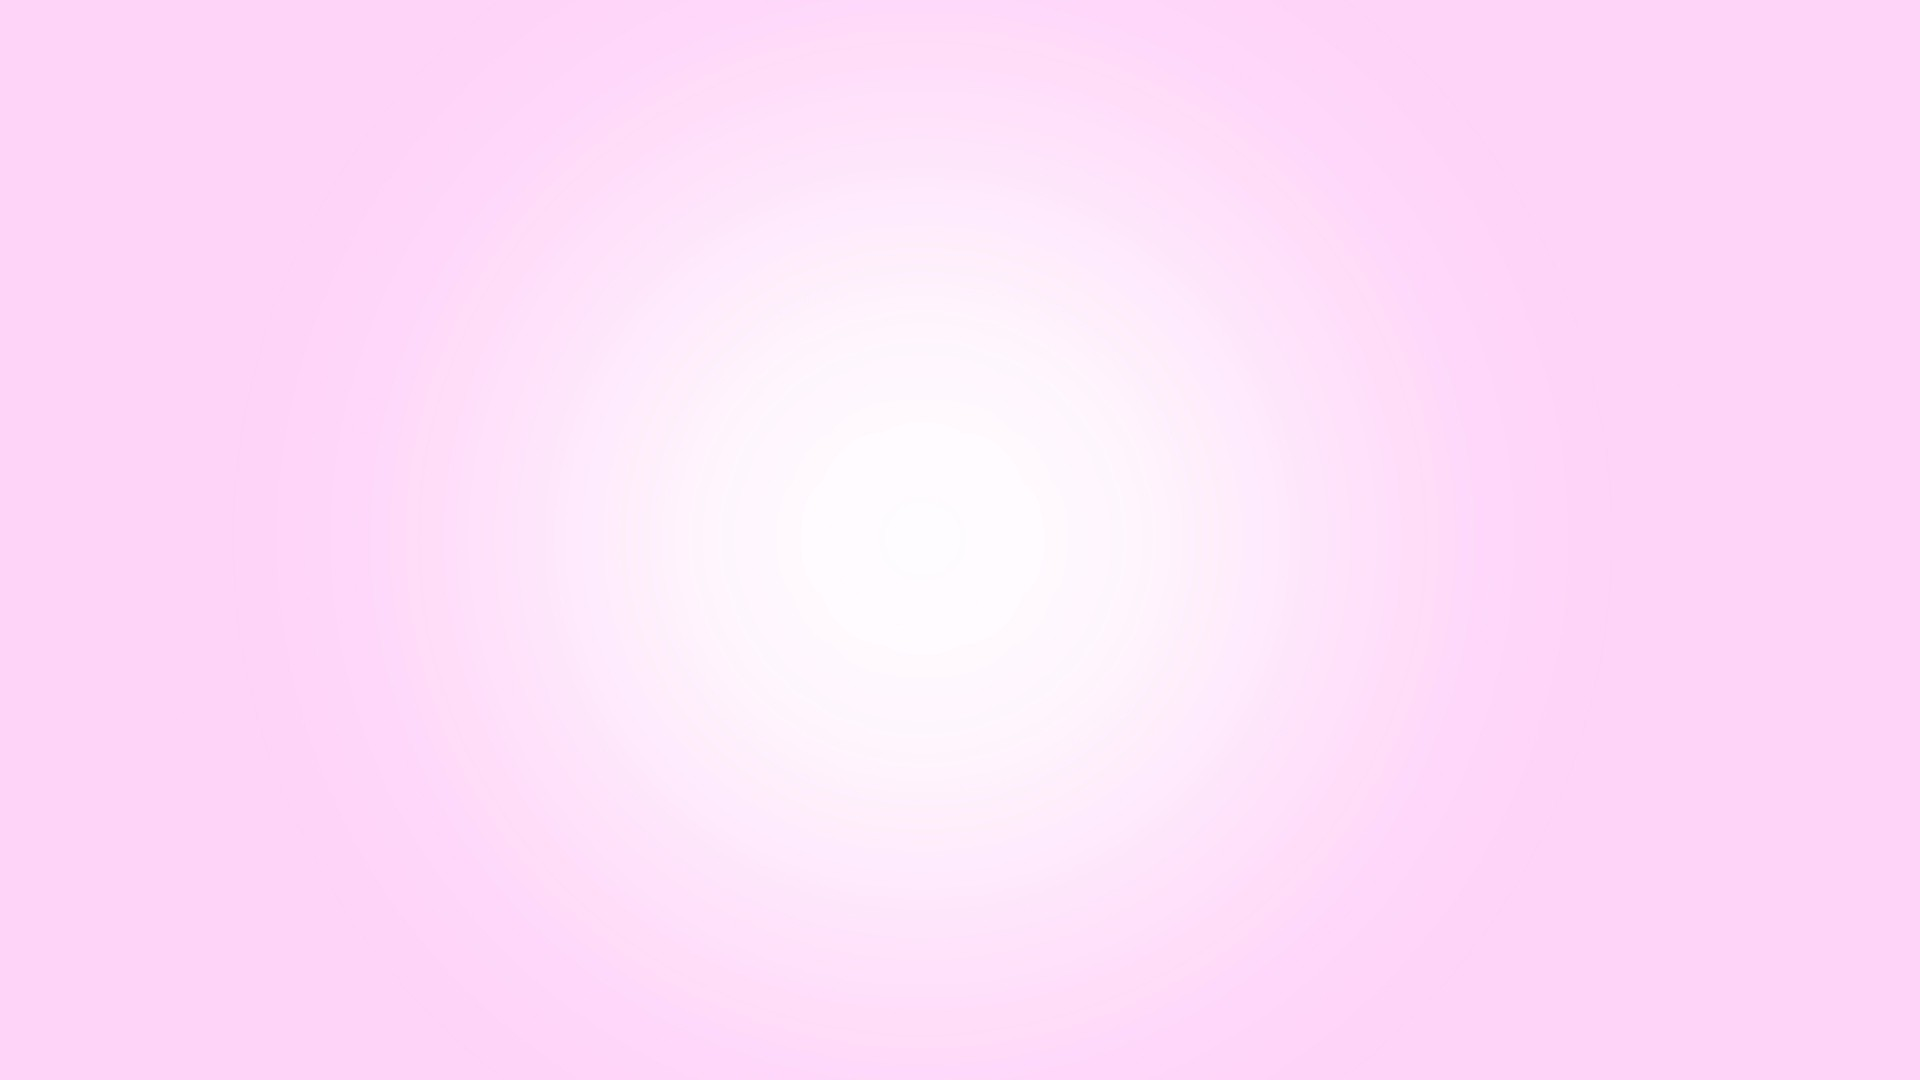 1920x1080 High Resolution Creative Pink And White Pictures Px Dallas Weigel